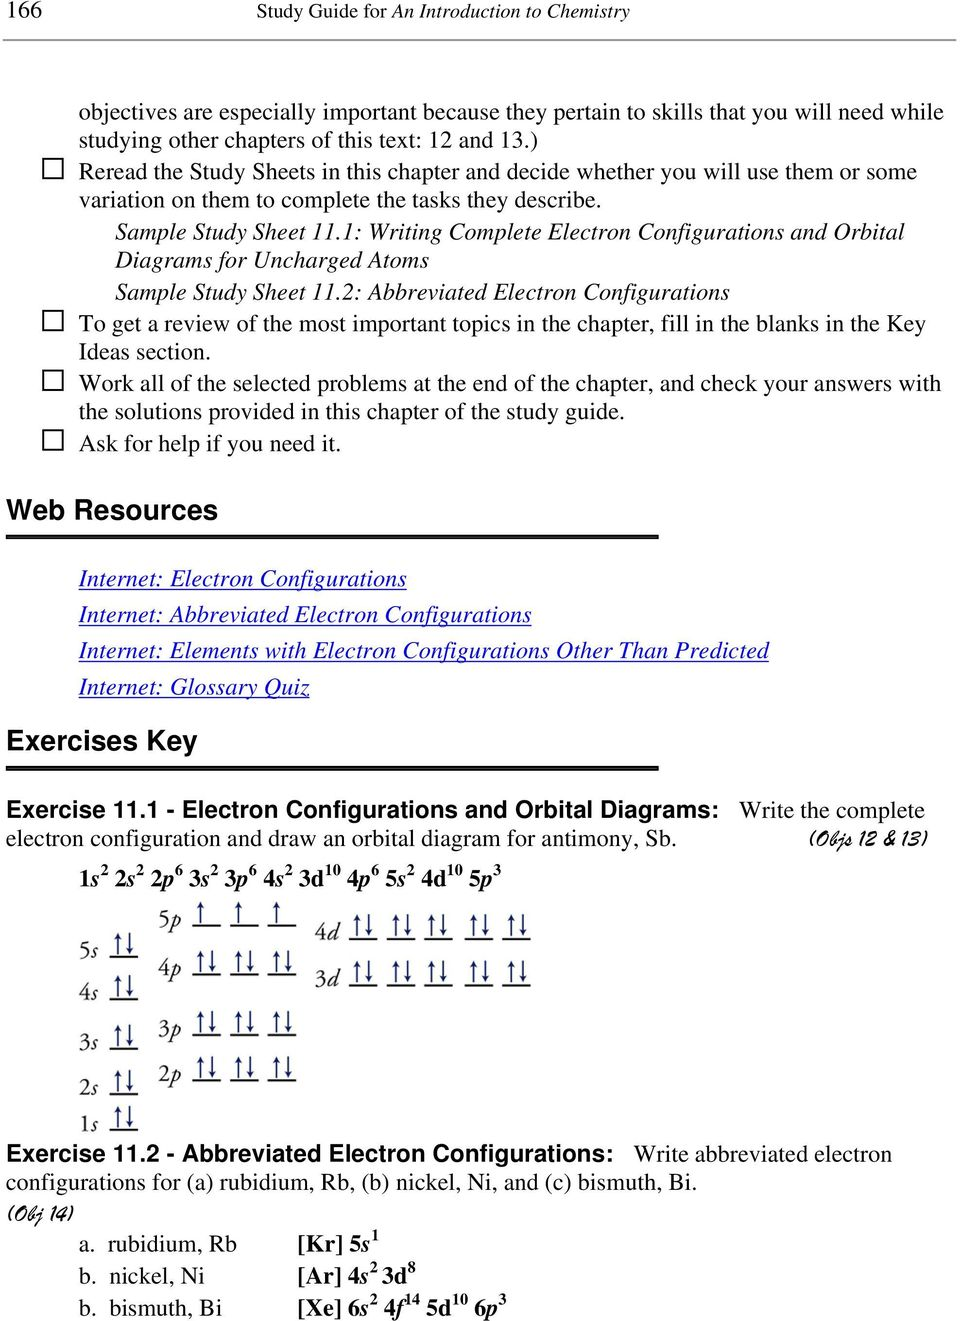 hight resolution of 1 writing complete electron configurations and orbital diagrams for uncharged atoms sample study sheet 11